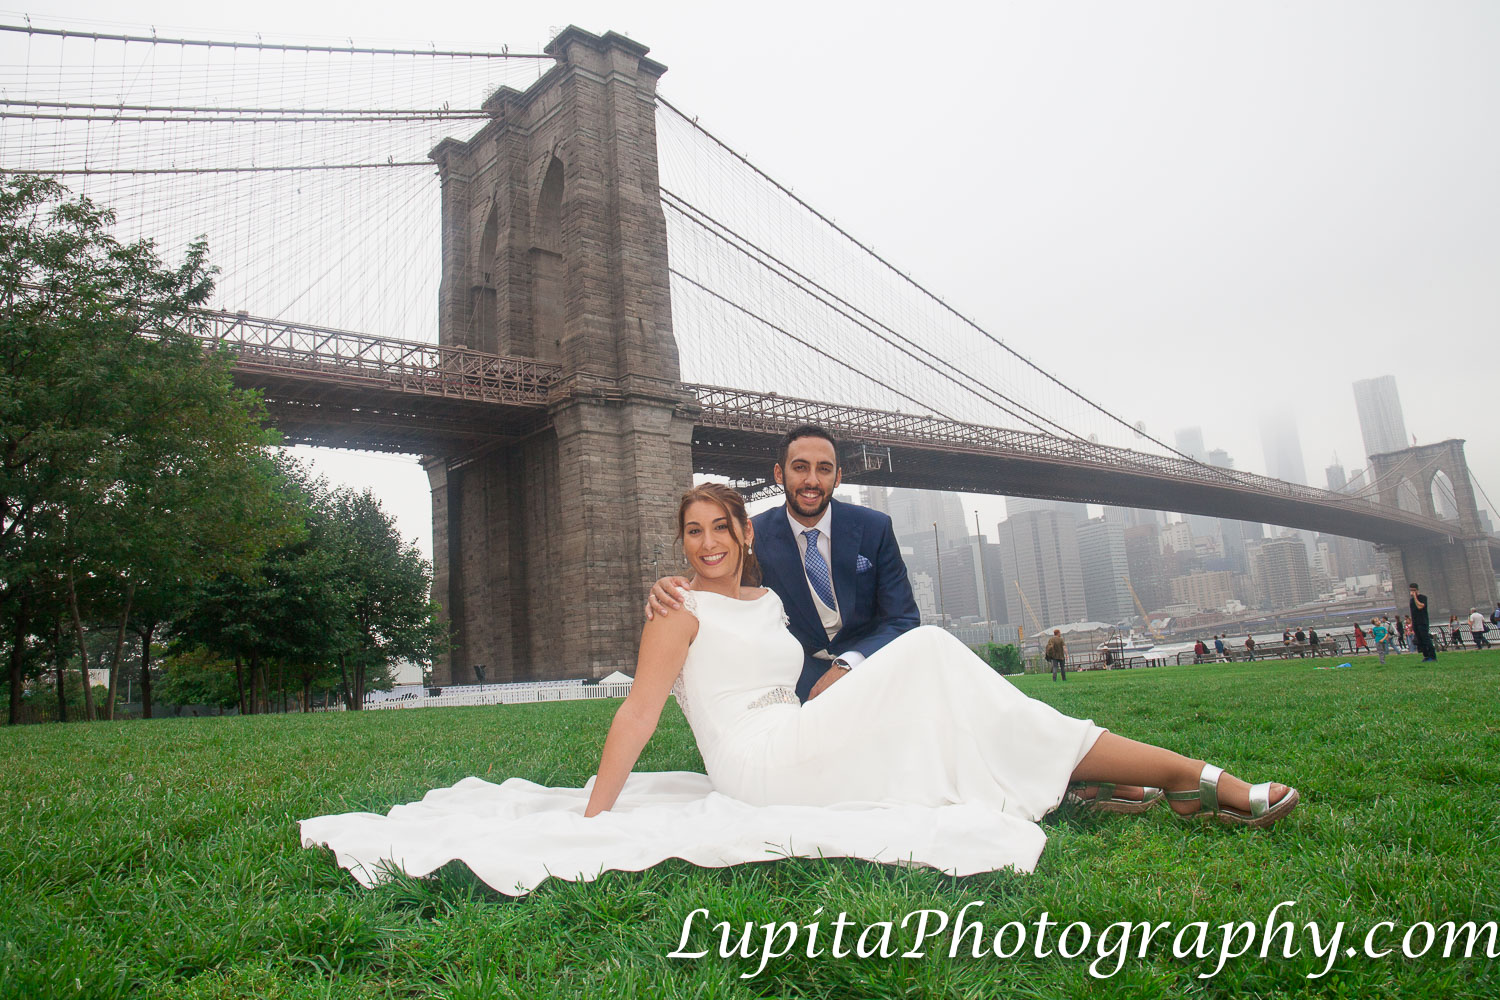 Pareja de España. Parque del Puente de Brooklyn. Ciudad de Nueva York. Couple from Spain. Brooklyn Bridge Park. New York City.